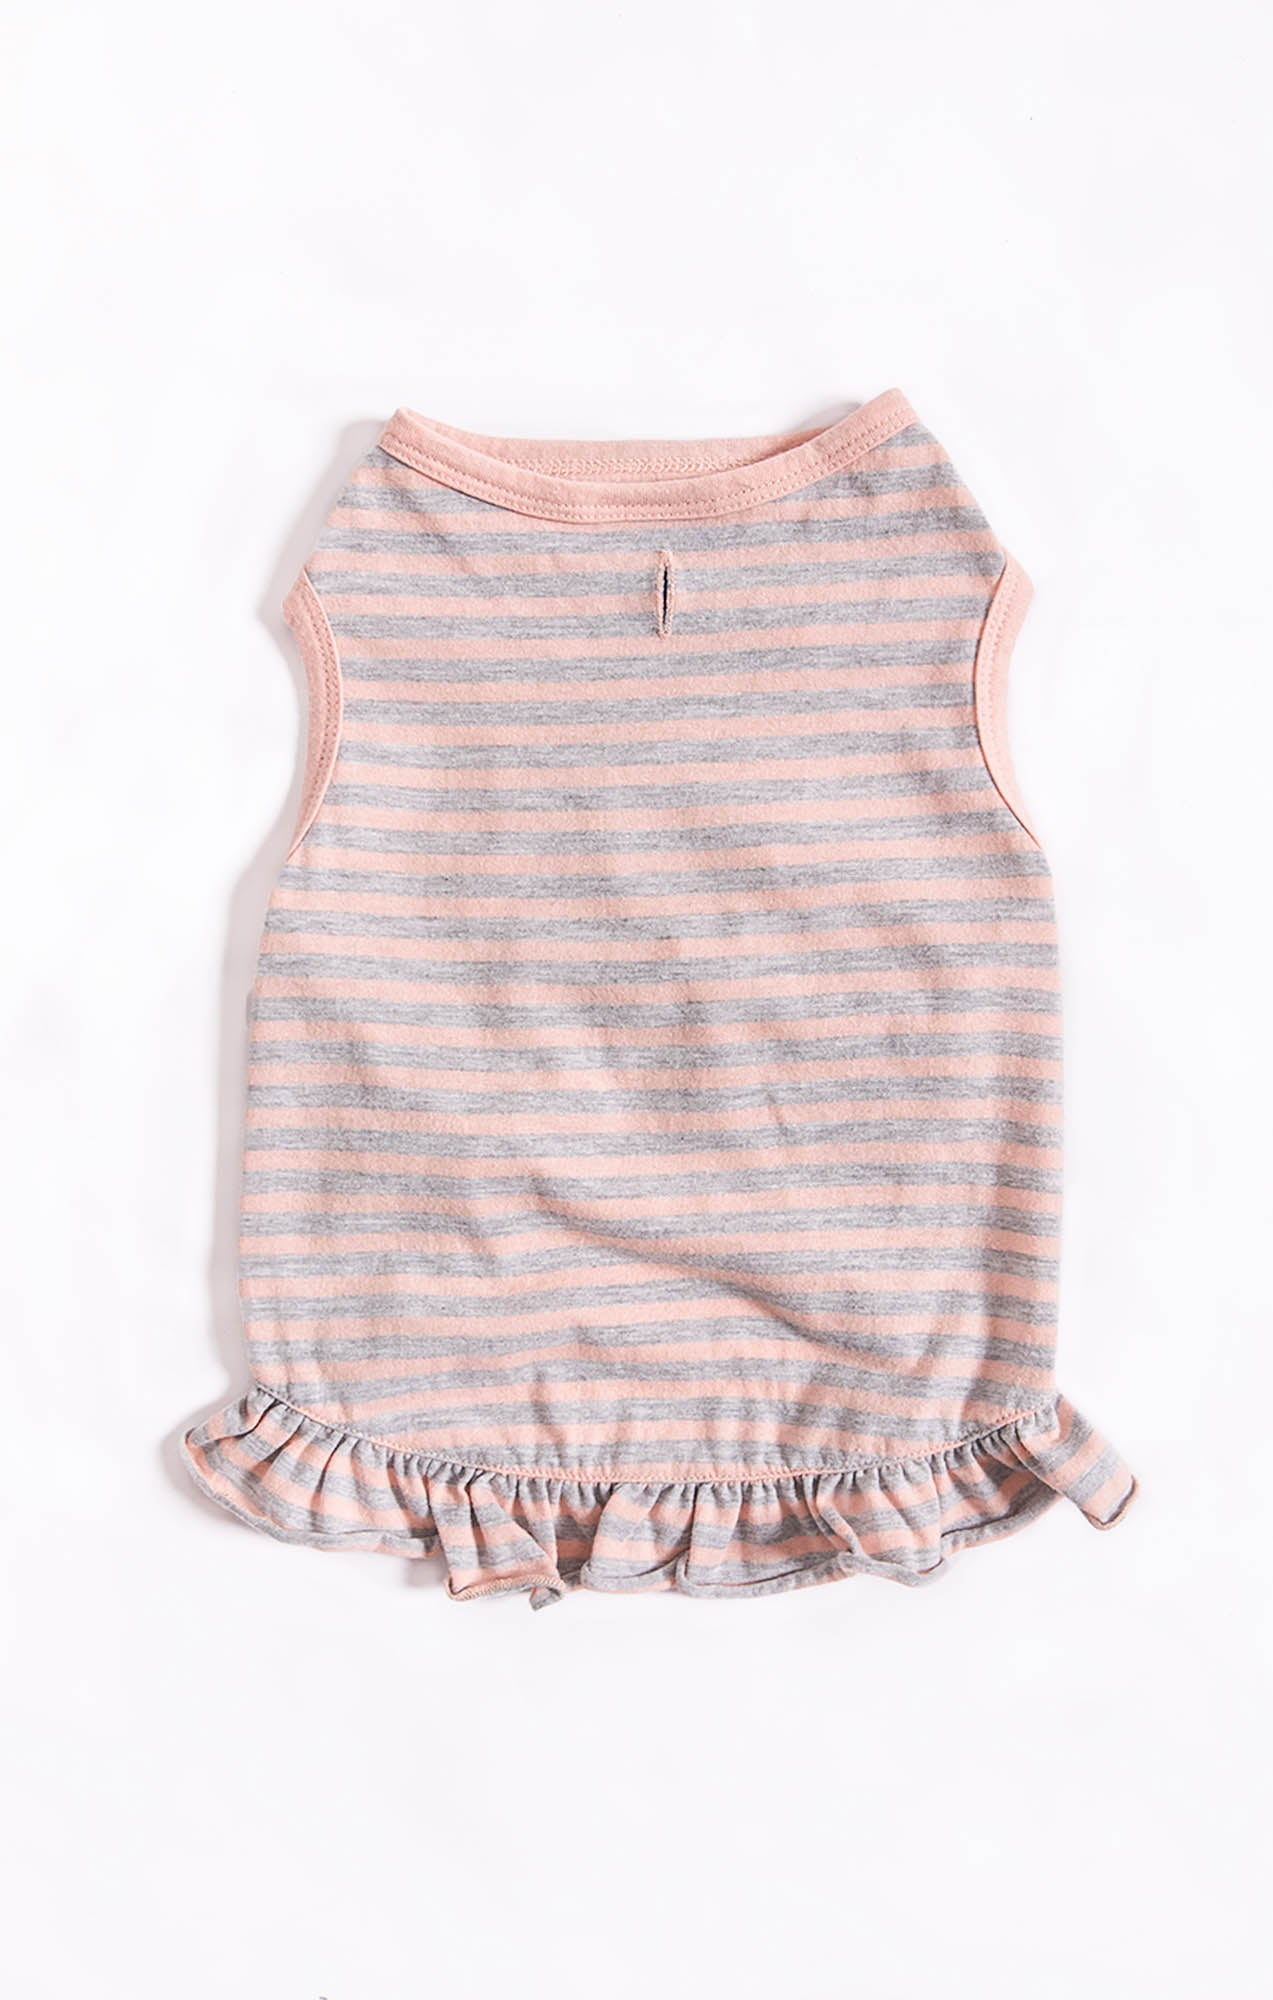 Tops Striped Ruffle Top by ZOO SUPPLY Heather Grey/Pink Dust